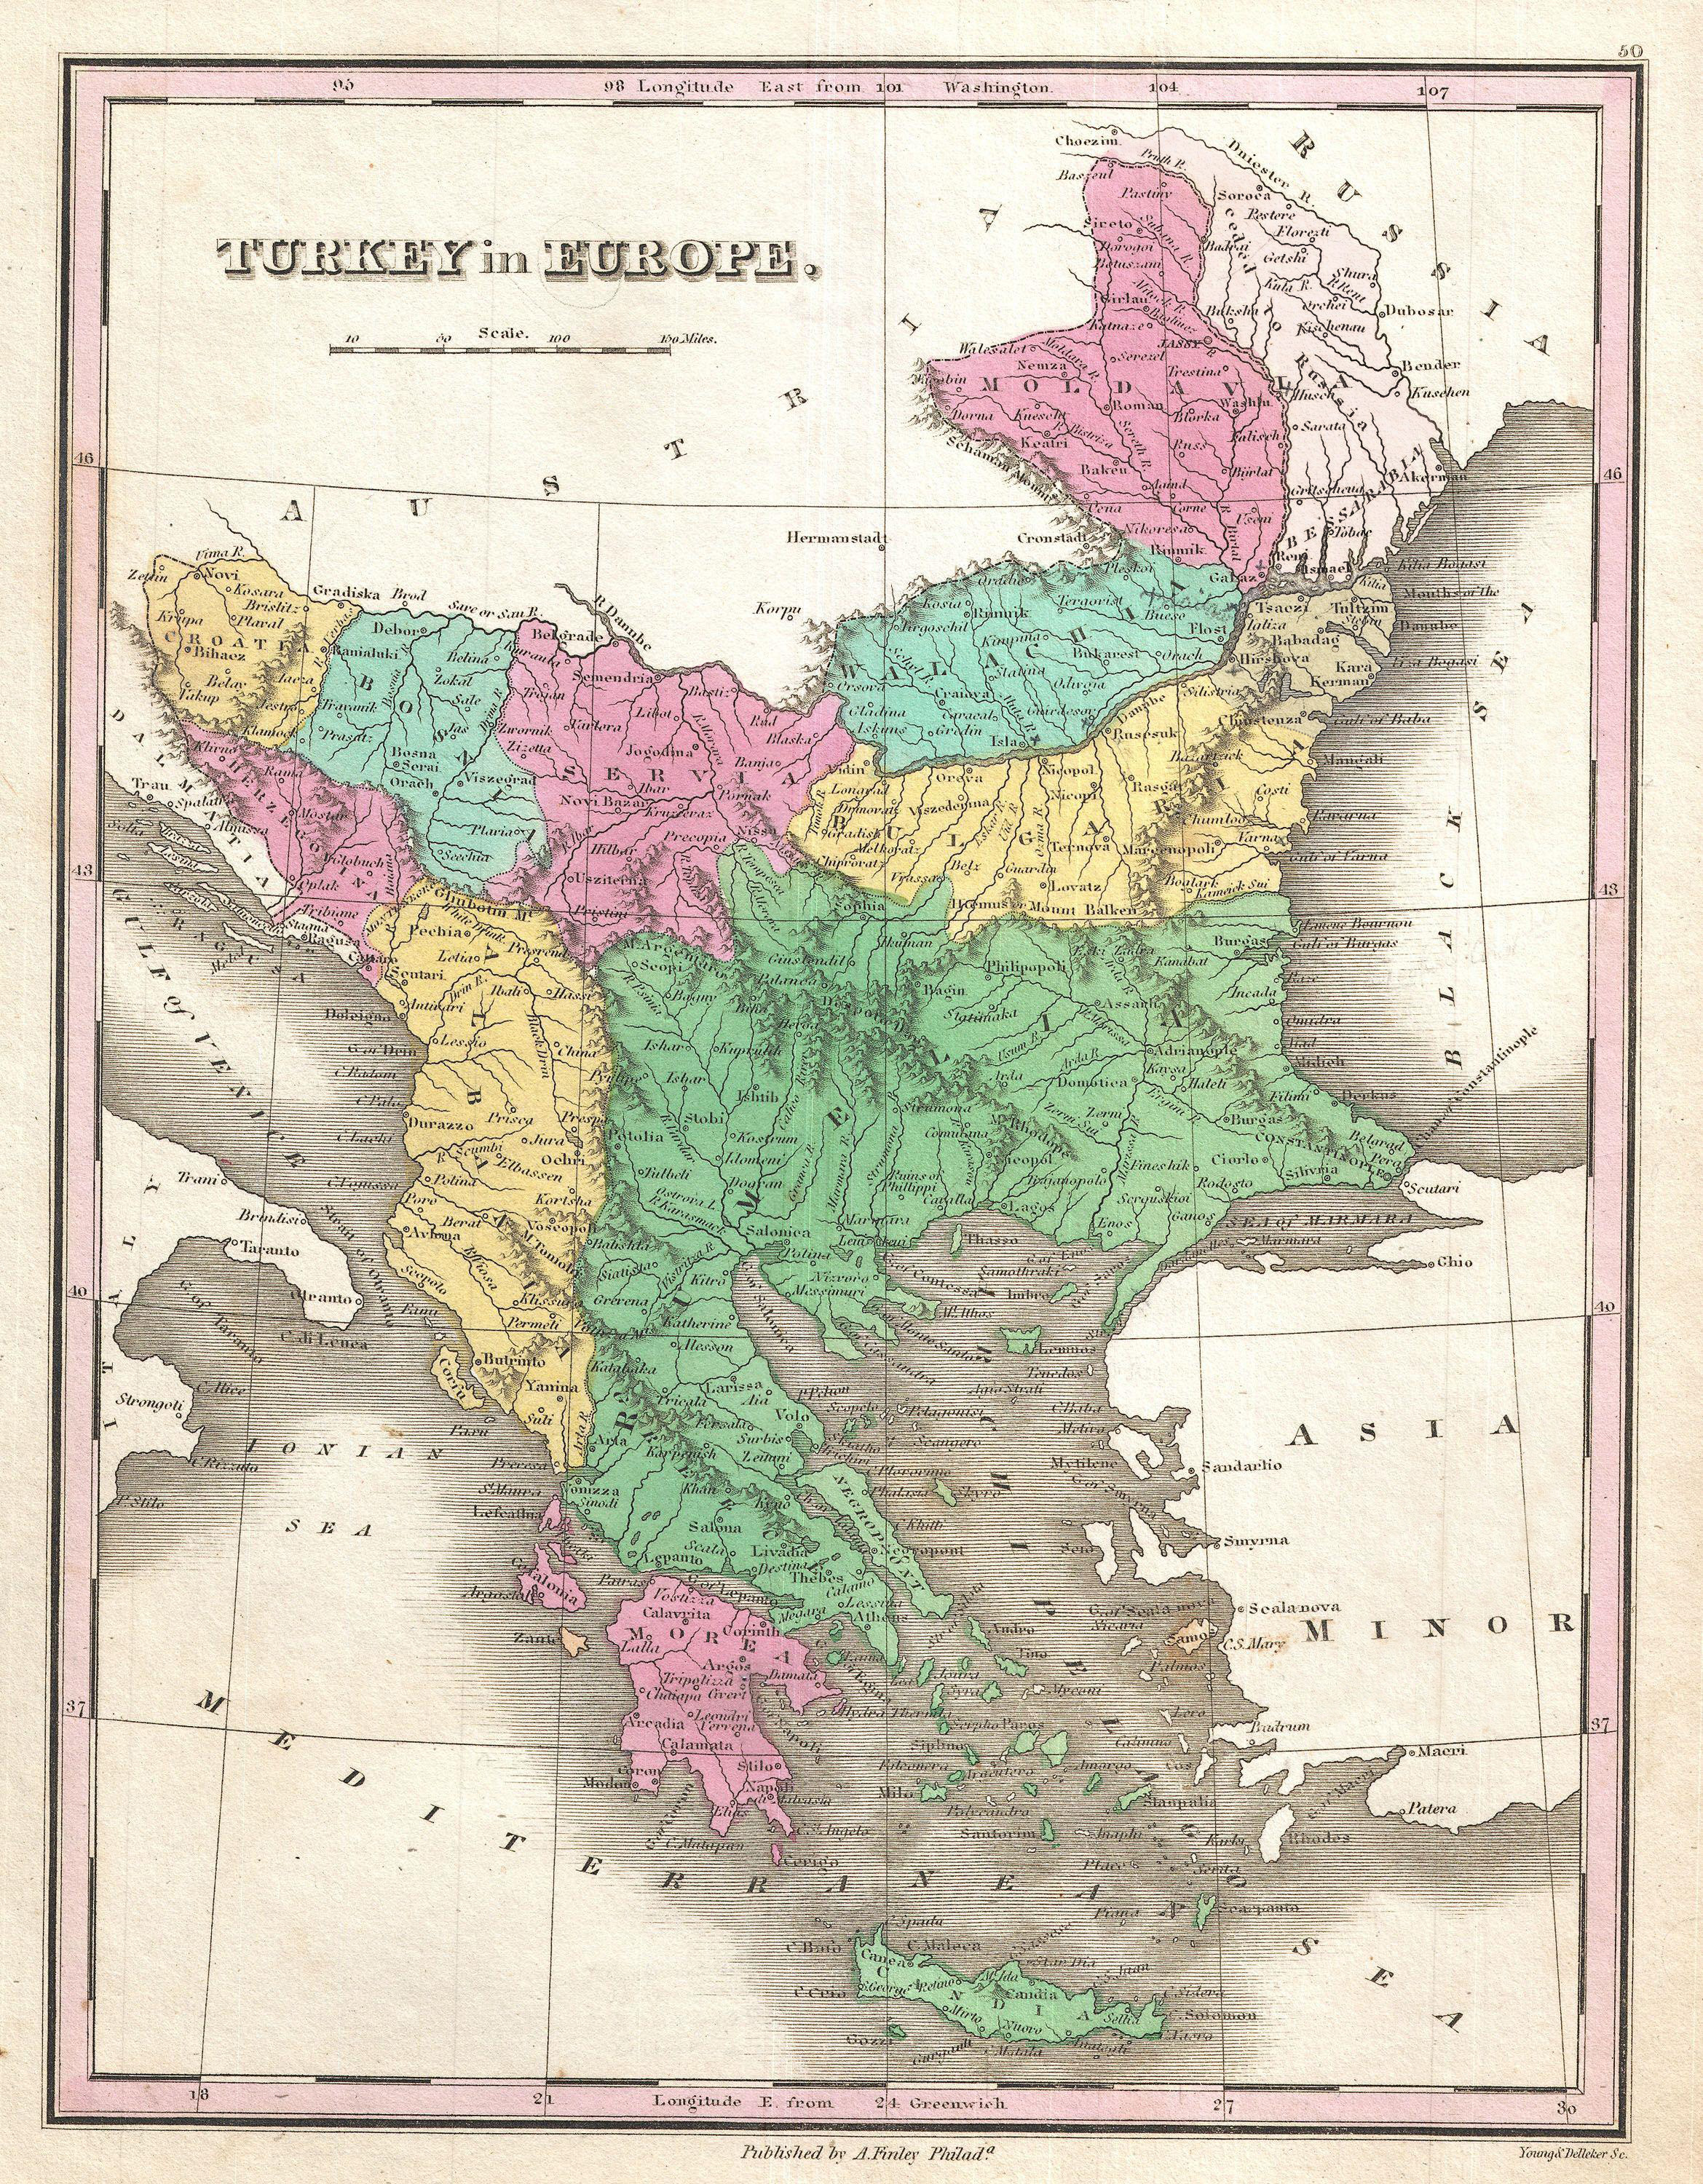 File:1827 Finley Map of Turkey in Europe, Greece and the Balkans -  Geographicus